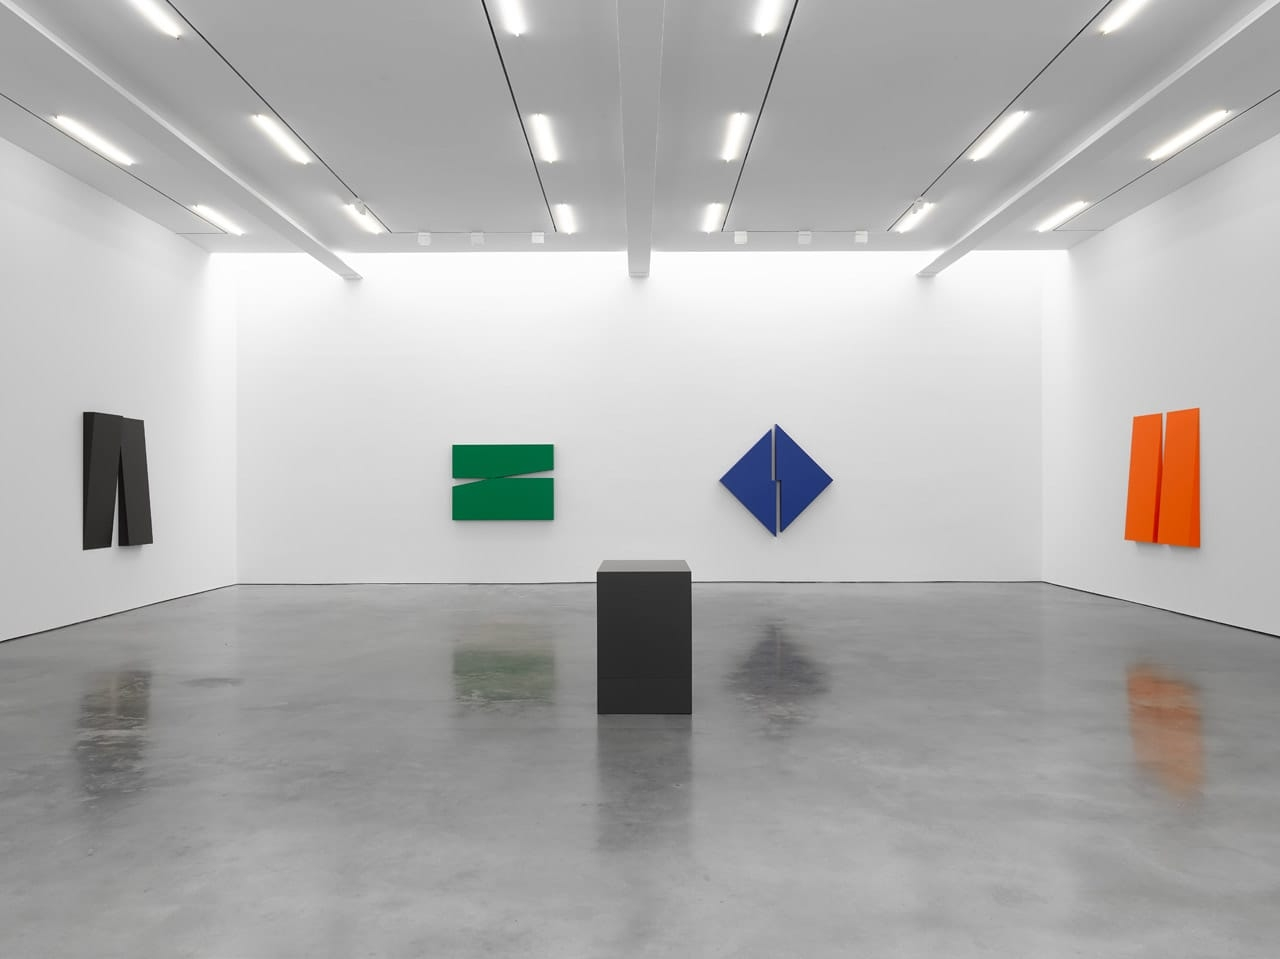 Installation view of Carmen Herrera: Estructuras, Lisson Gallery, New York, 2018.